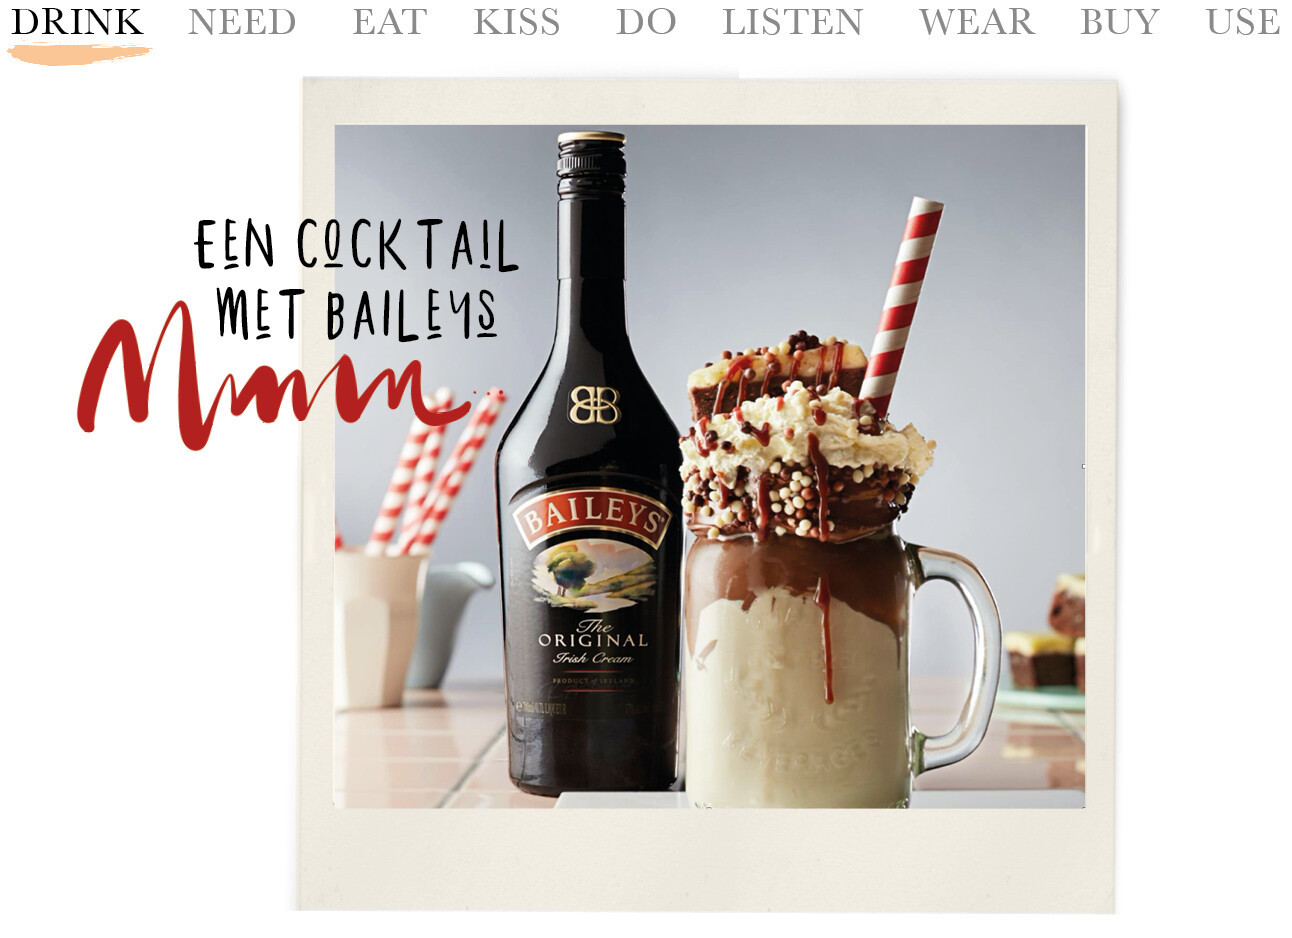 Today we drink een cocktail met Baileys